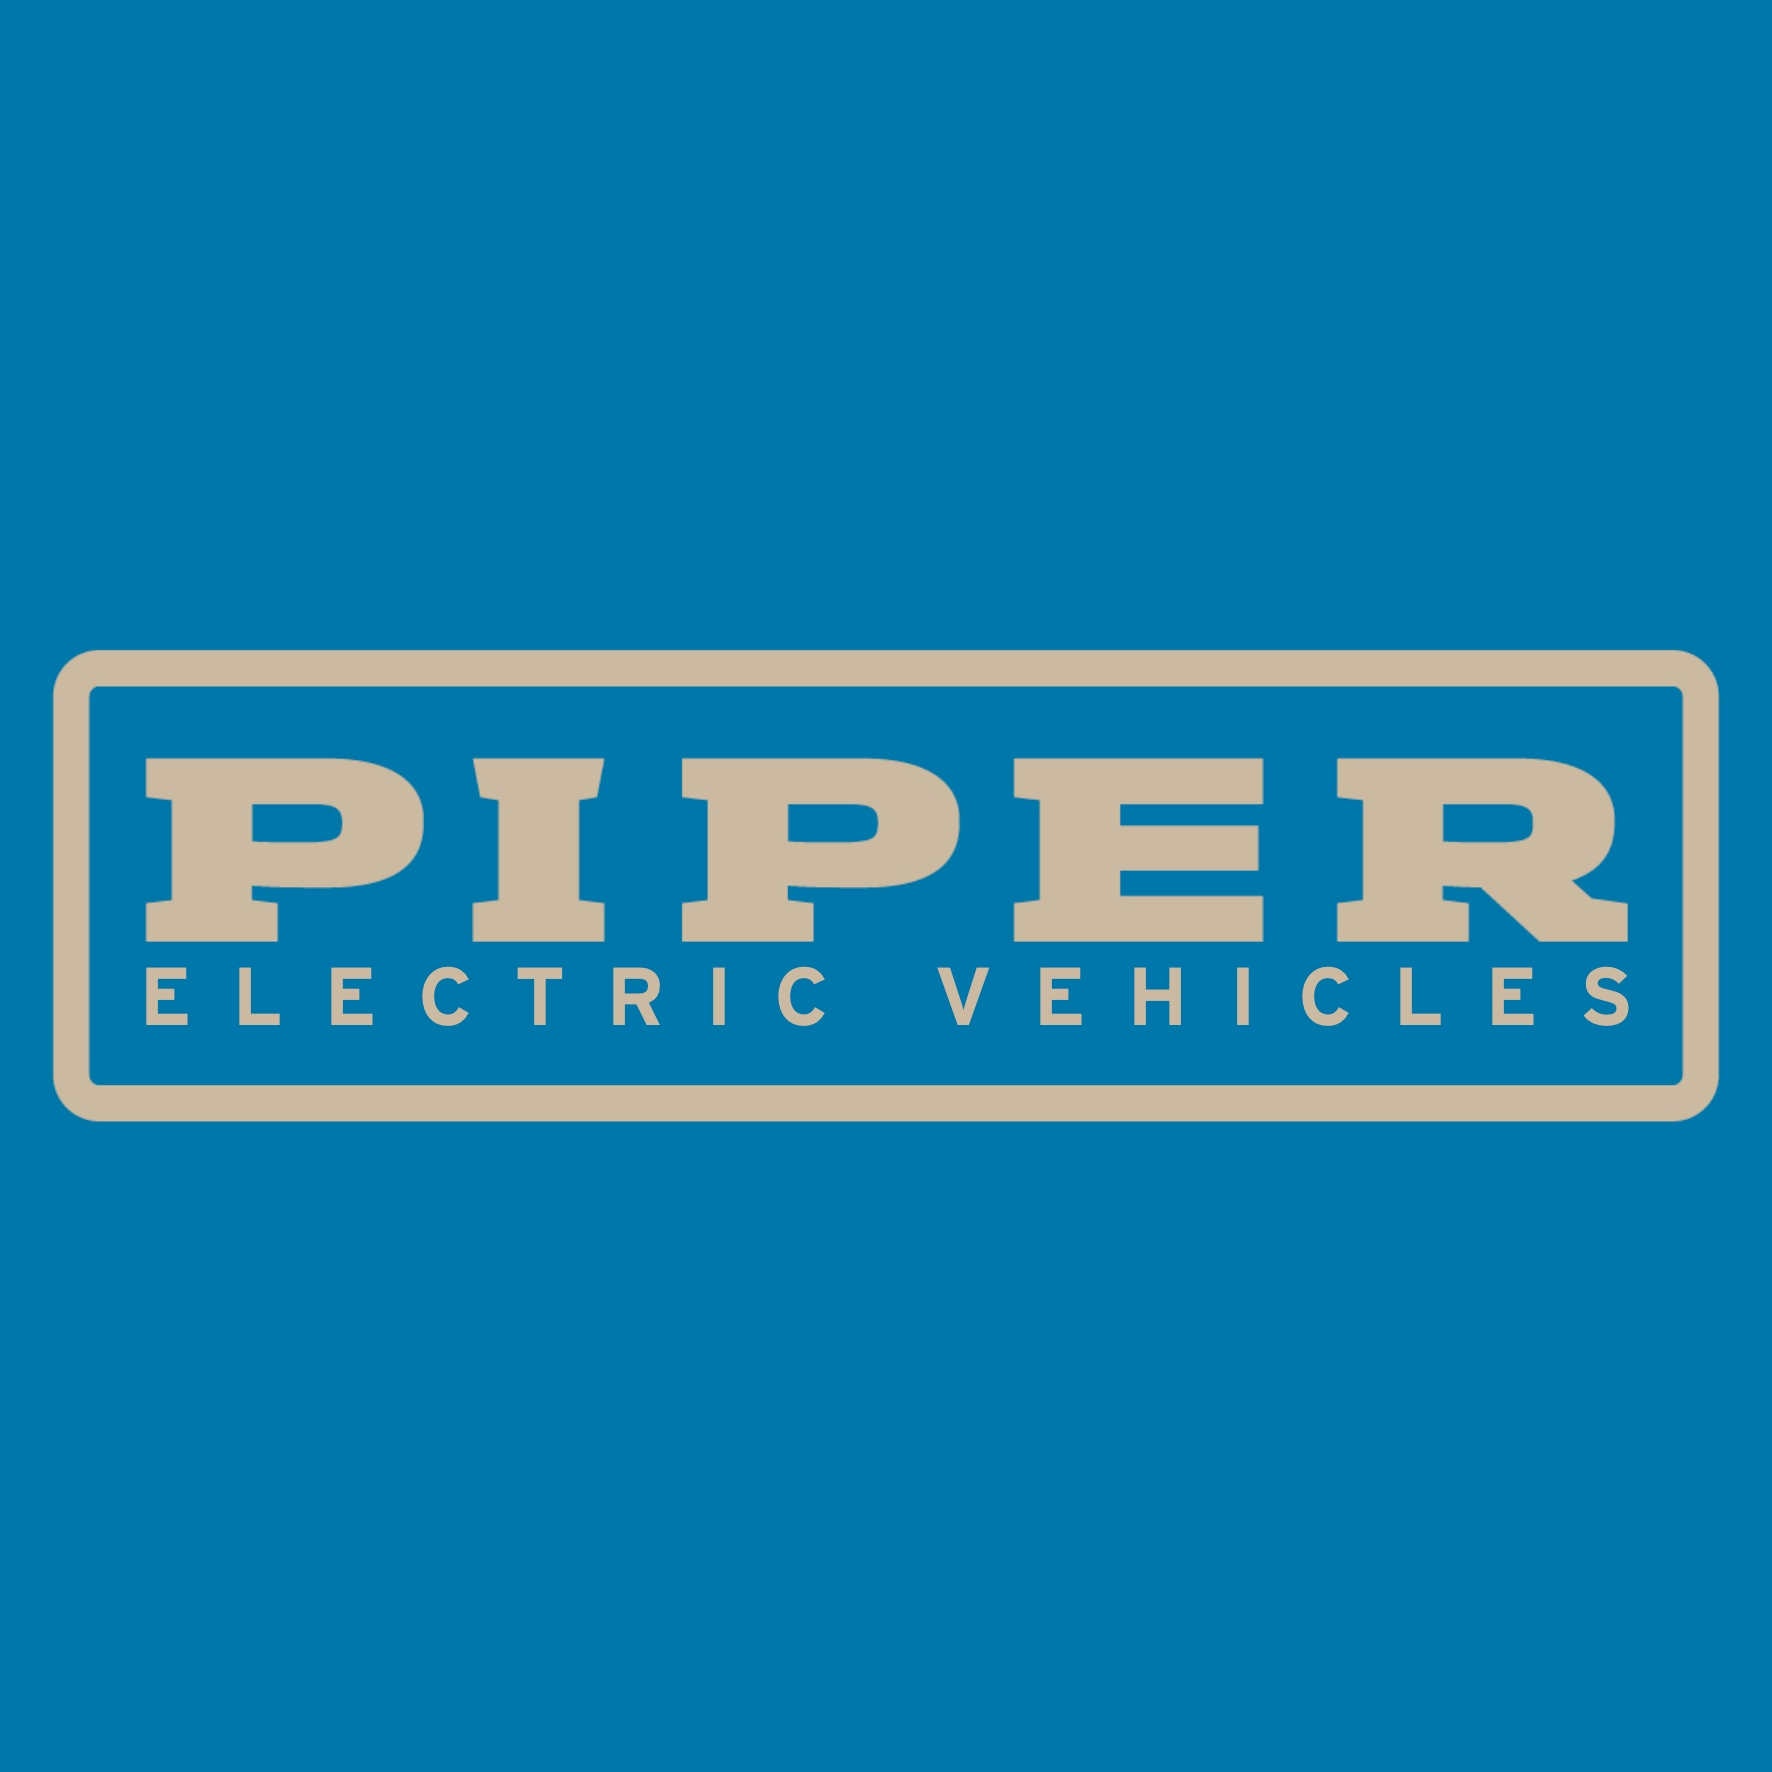 Piper Electric Vehicles logo